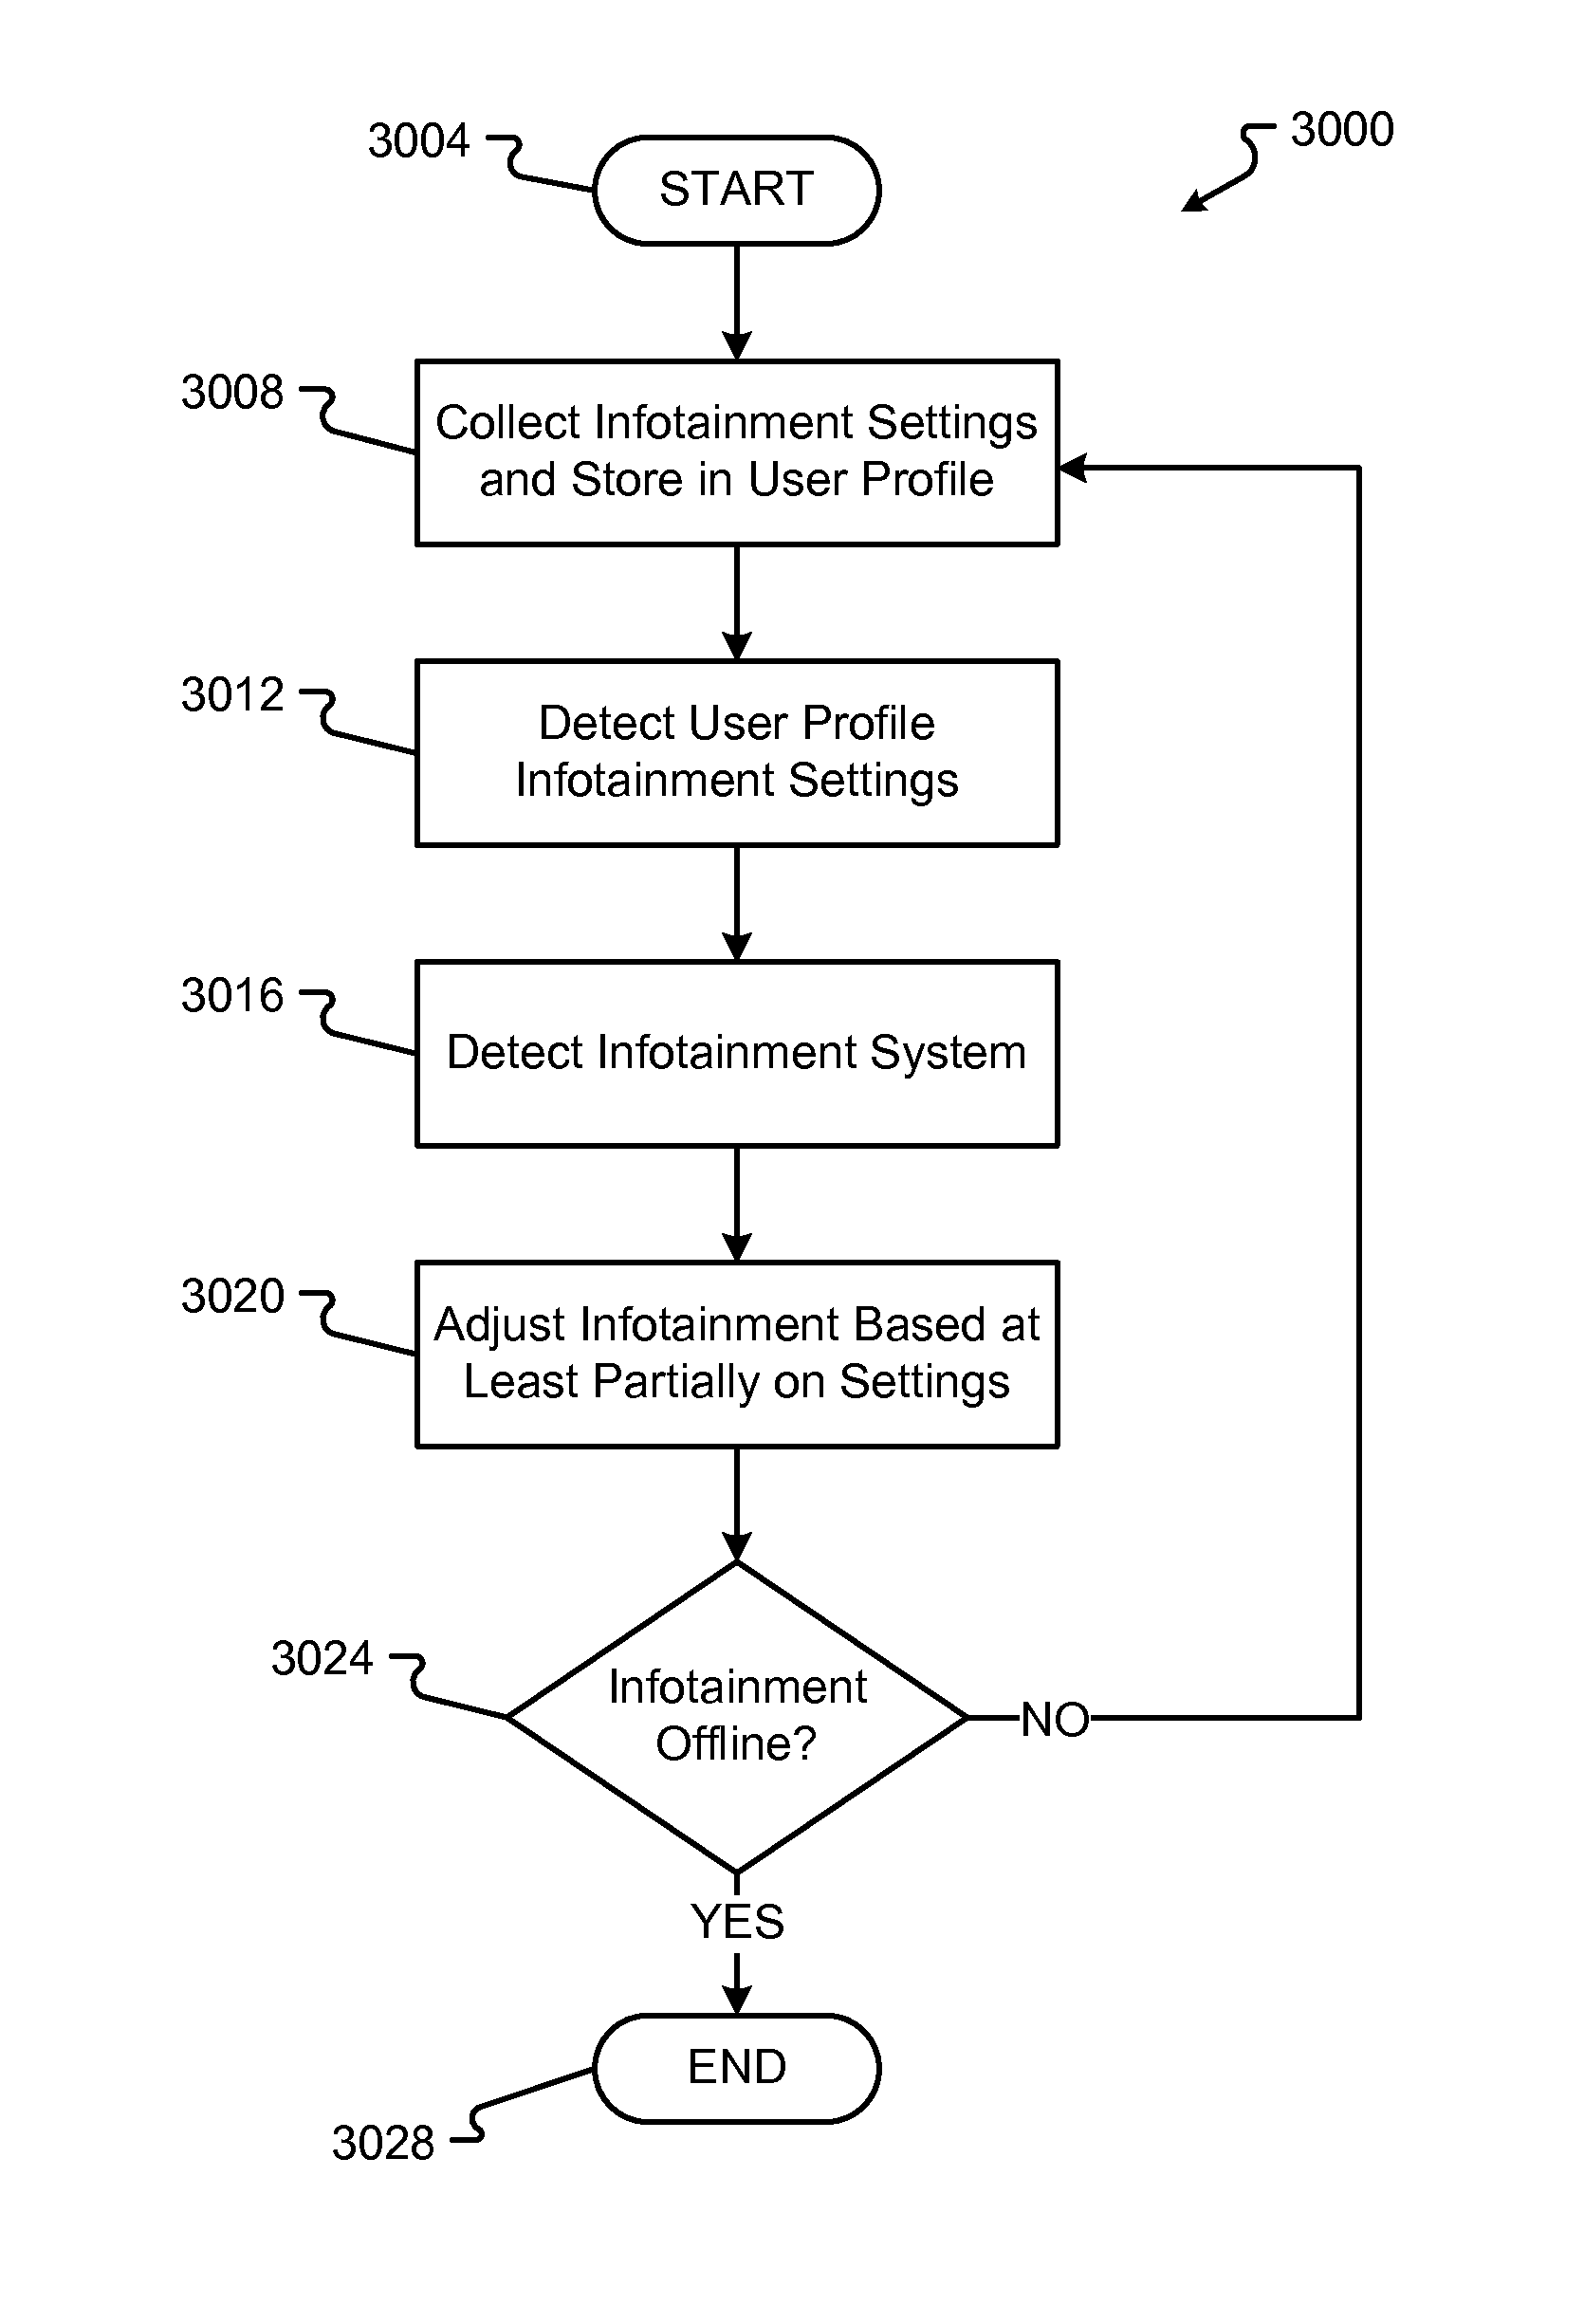 US9147297B2 - Infotainment system based on user profile